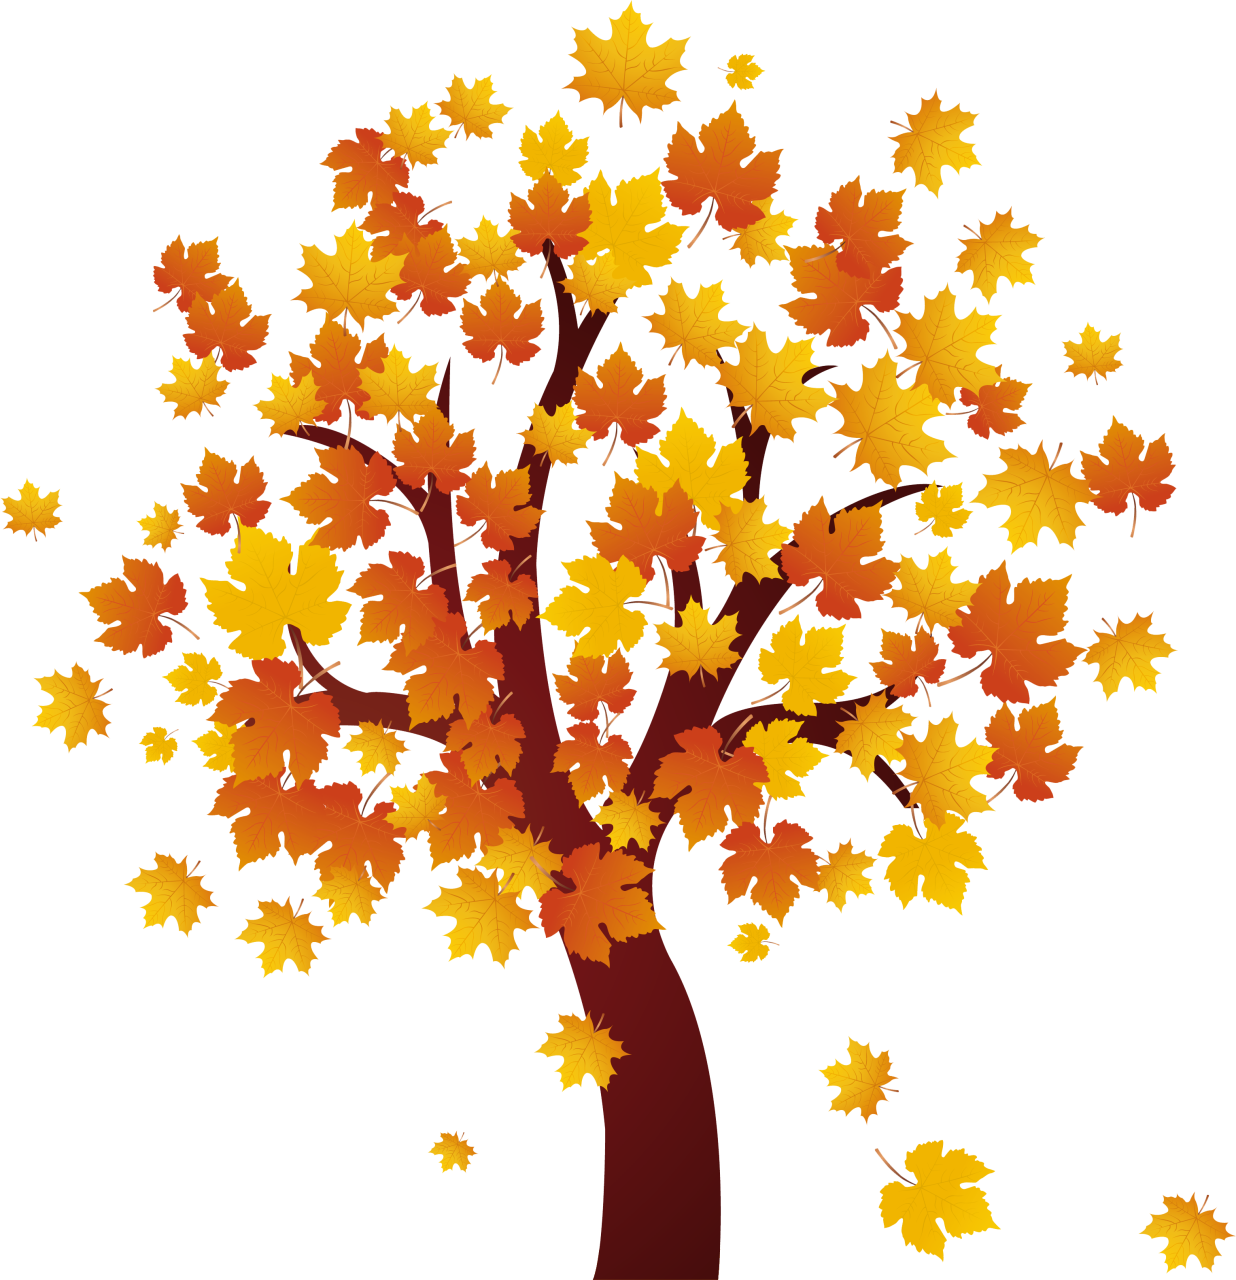 That Others image has been removed at the request of its copyright owner. fall tree